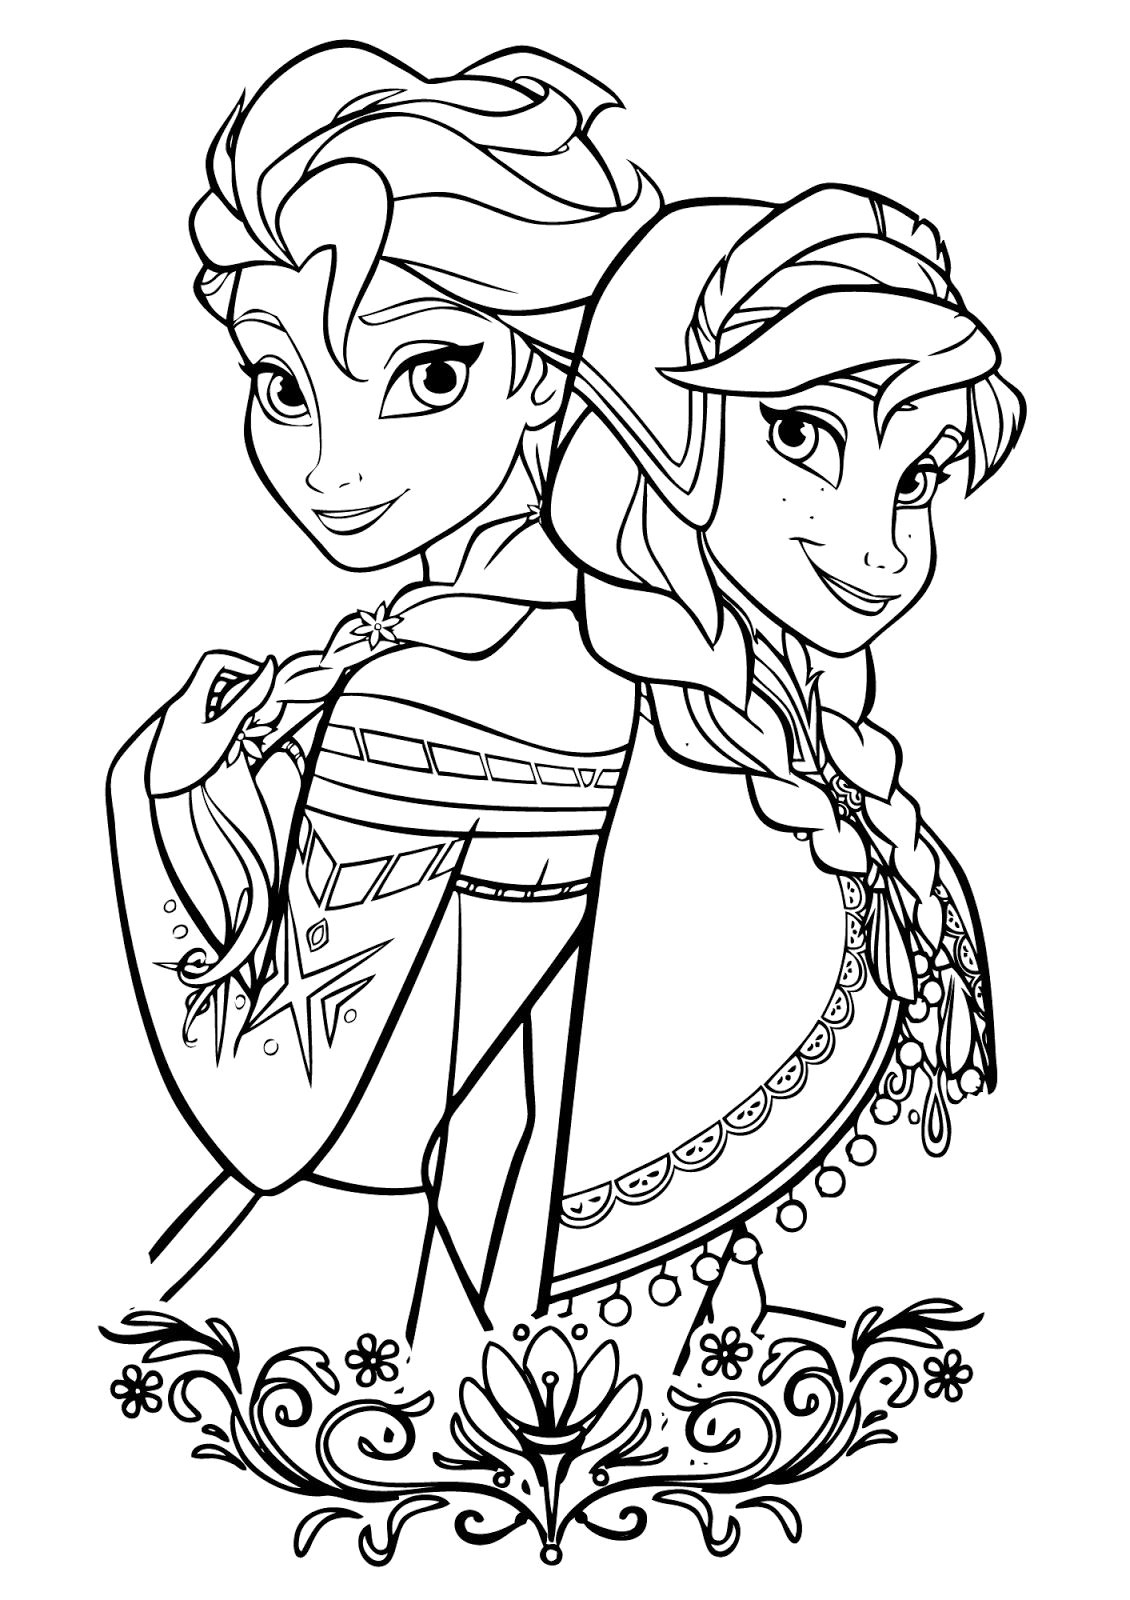 Elsa and Anna in winter outfit